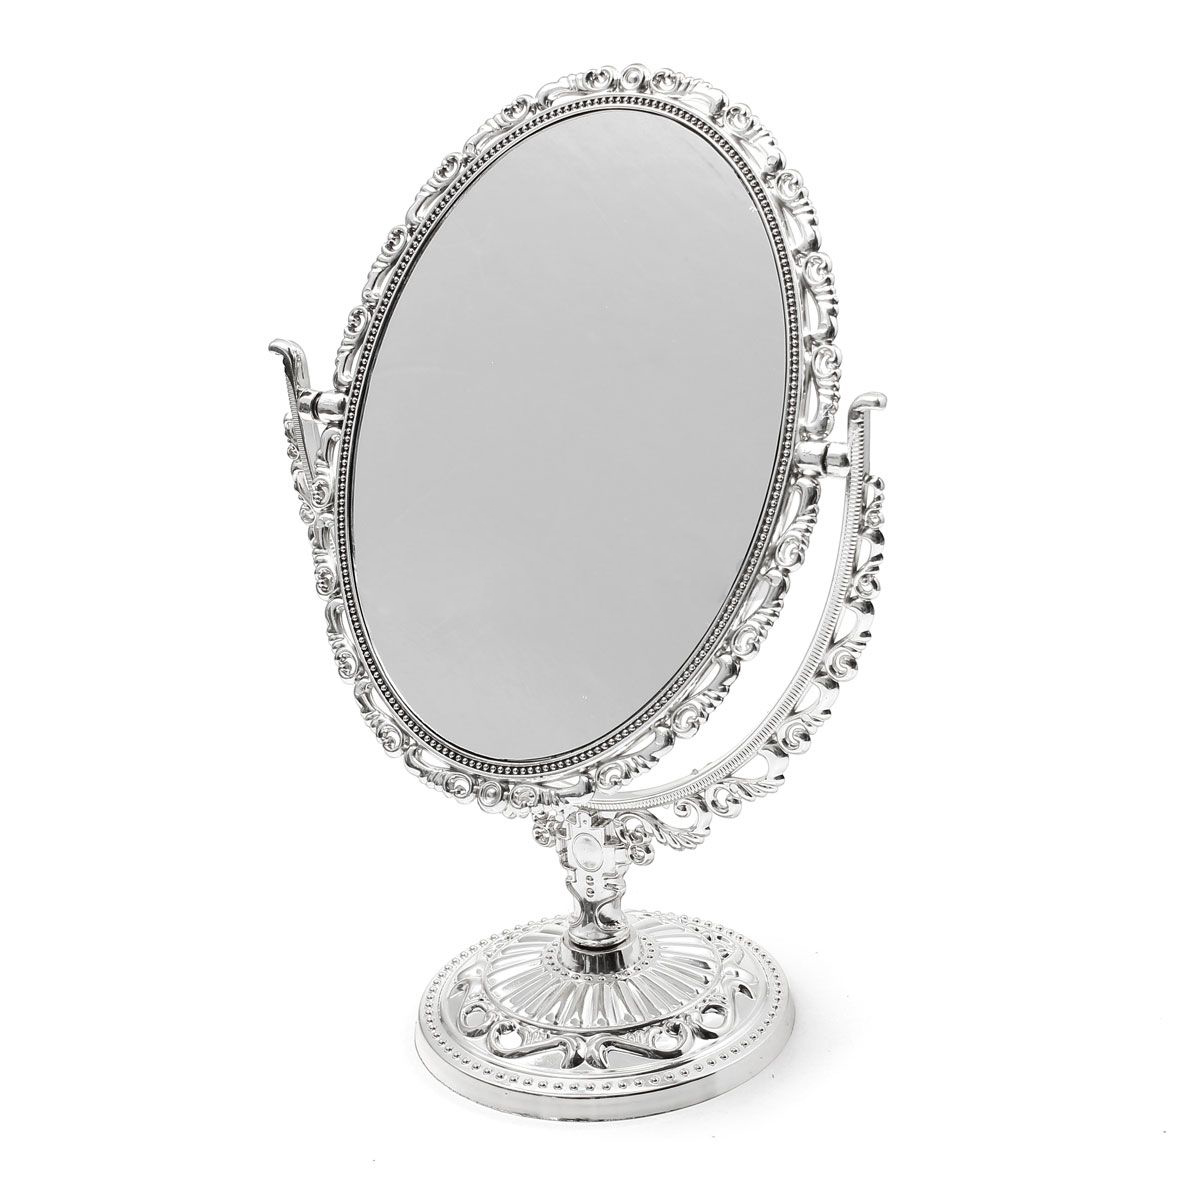 SILVER VANITY MAKE UP COSMETIC TABLE BATHROOM MIRROR ON FOOT STAND